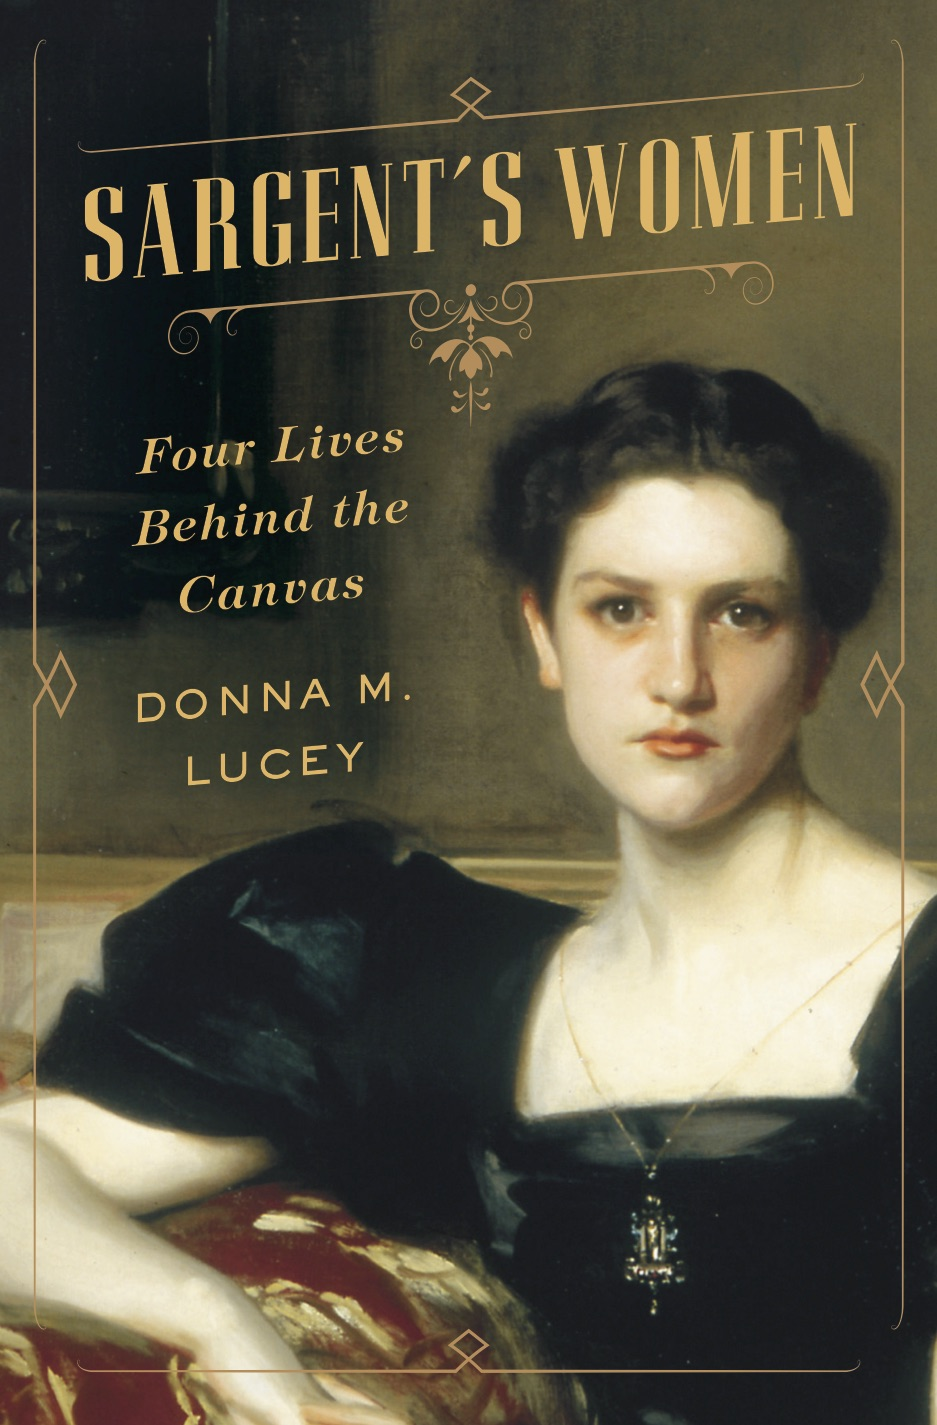 sargent's women cover by Donna Lucey.jpg